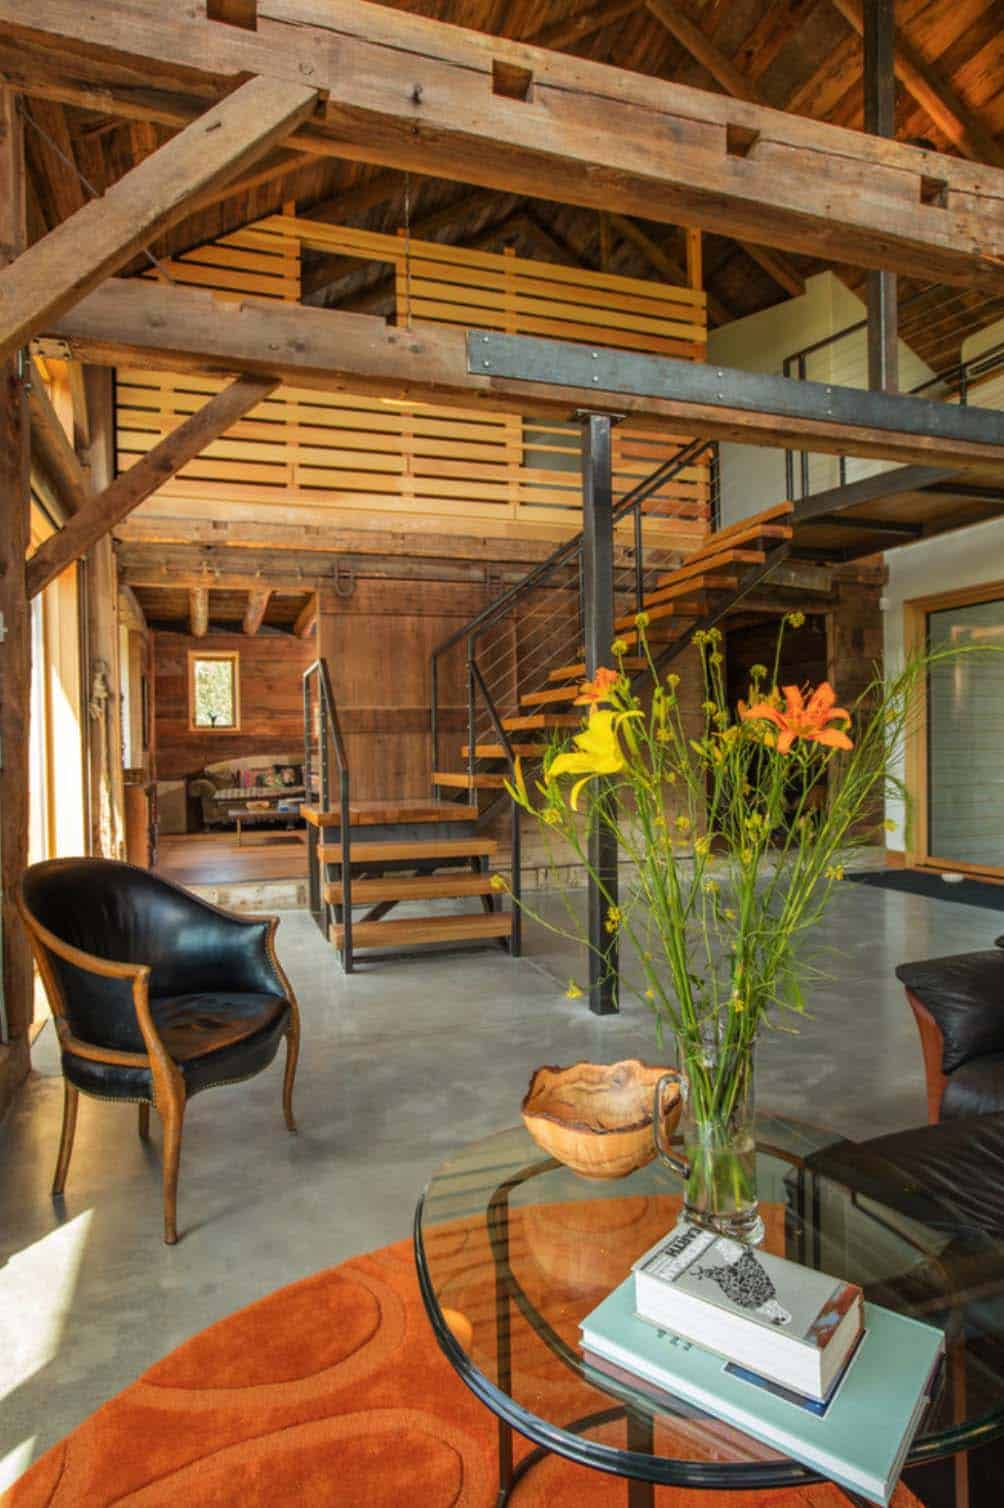 Rustic Barn Guesthouse-Joan Heaton Architects-12-1 Kindesign